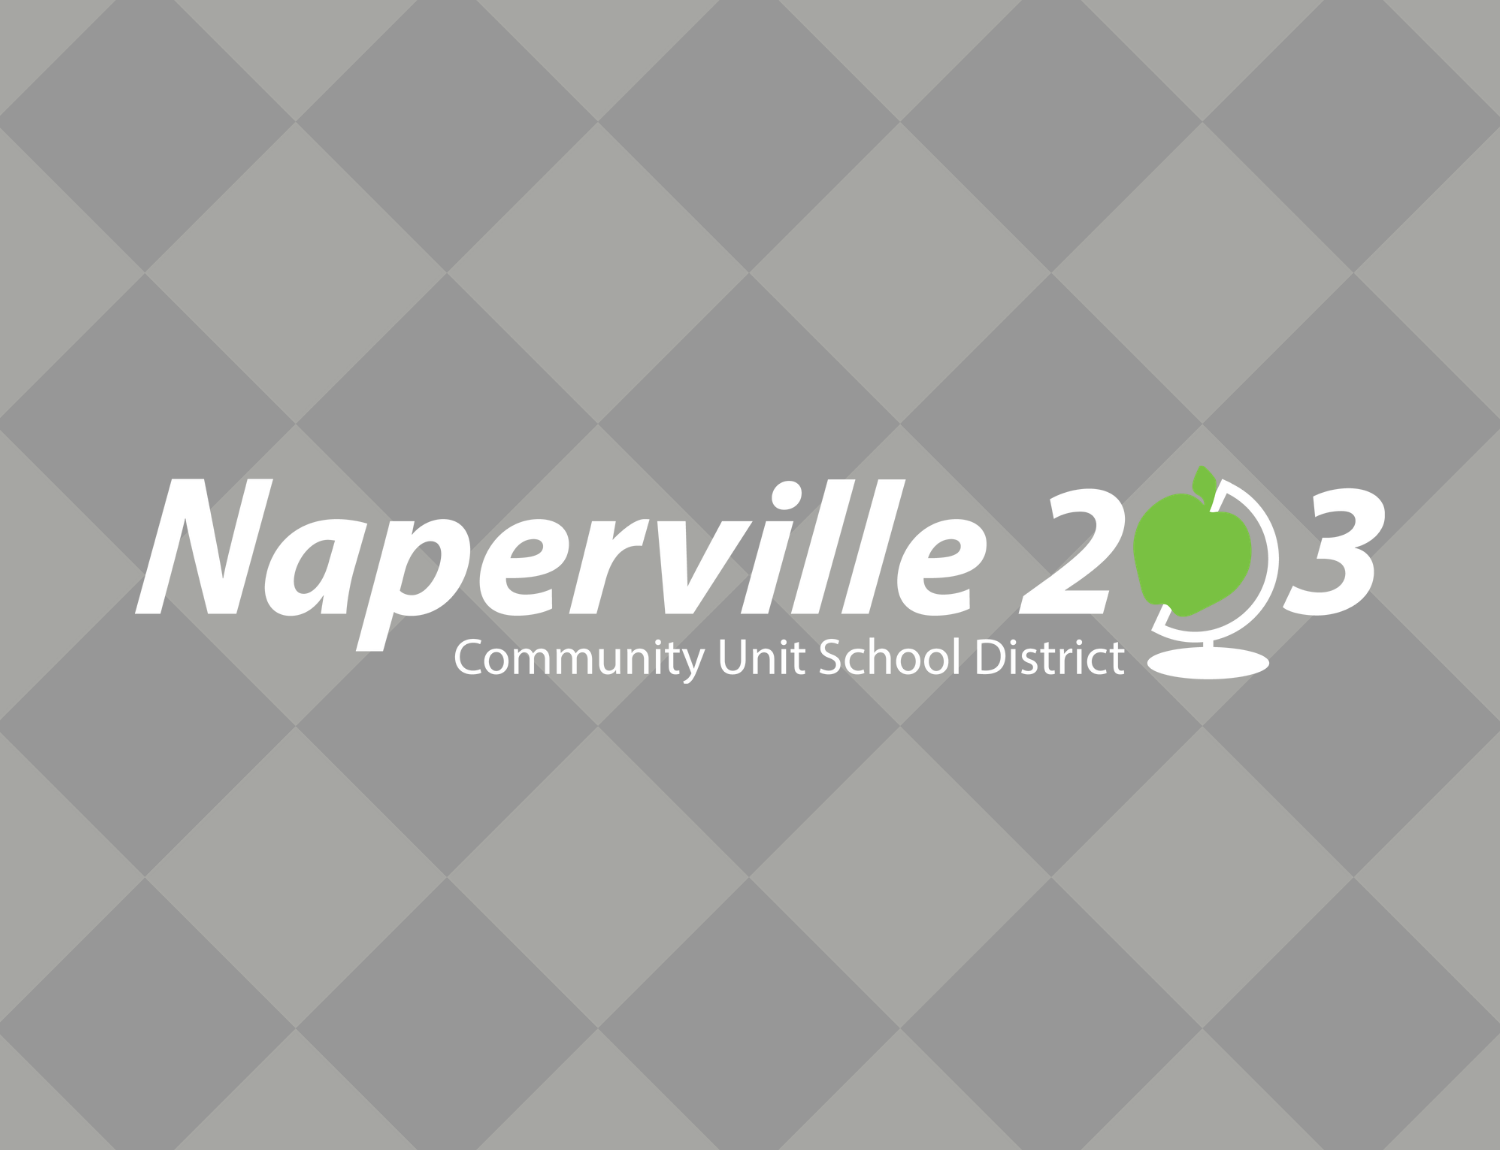 Naperville 203 to Provide Economic Relief to Community